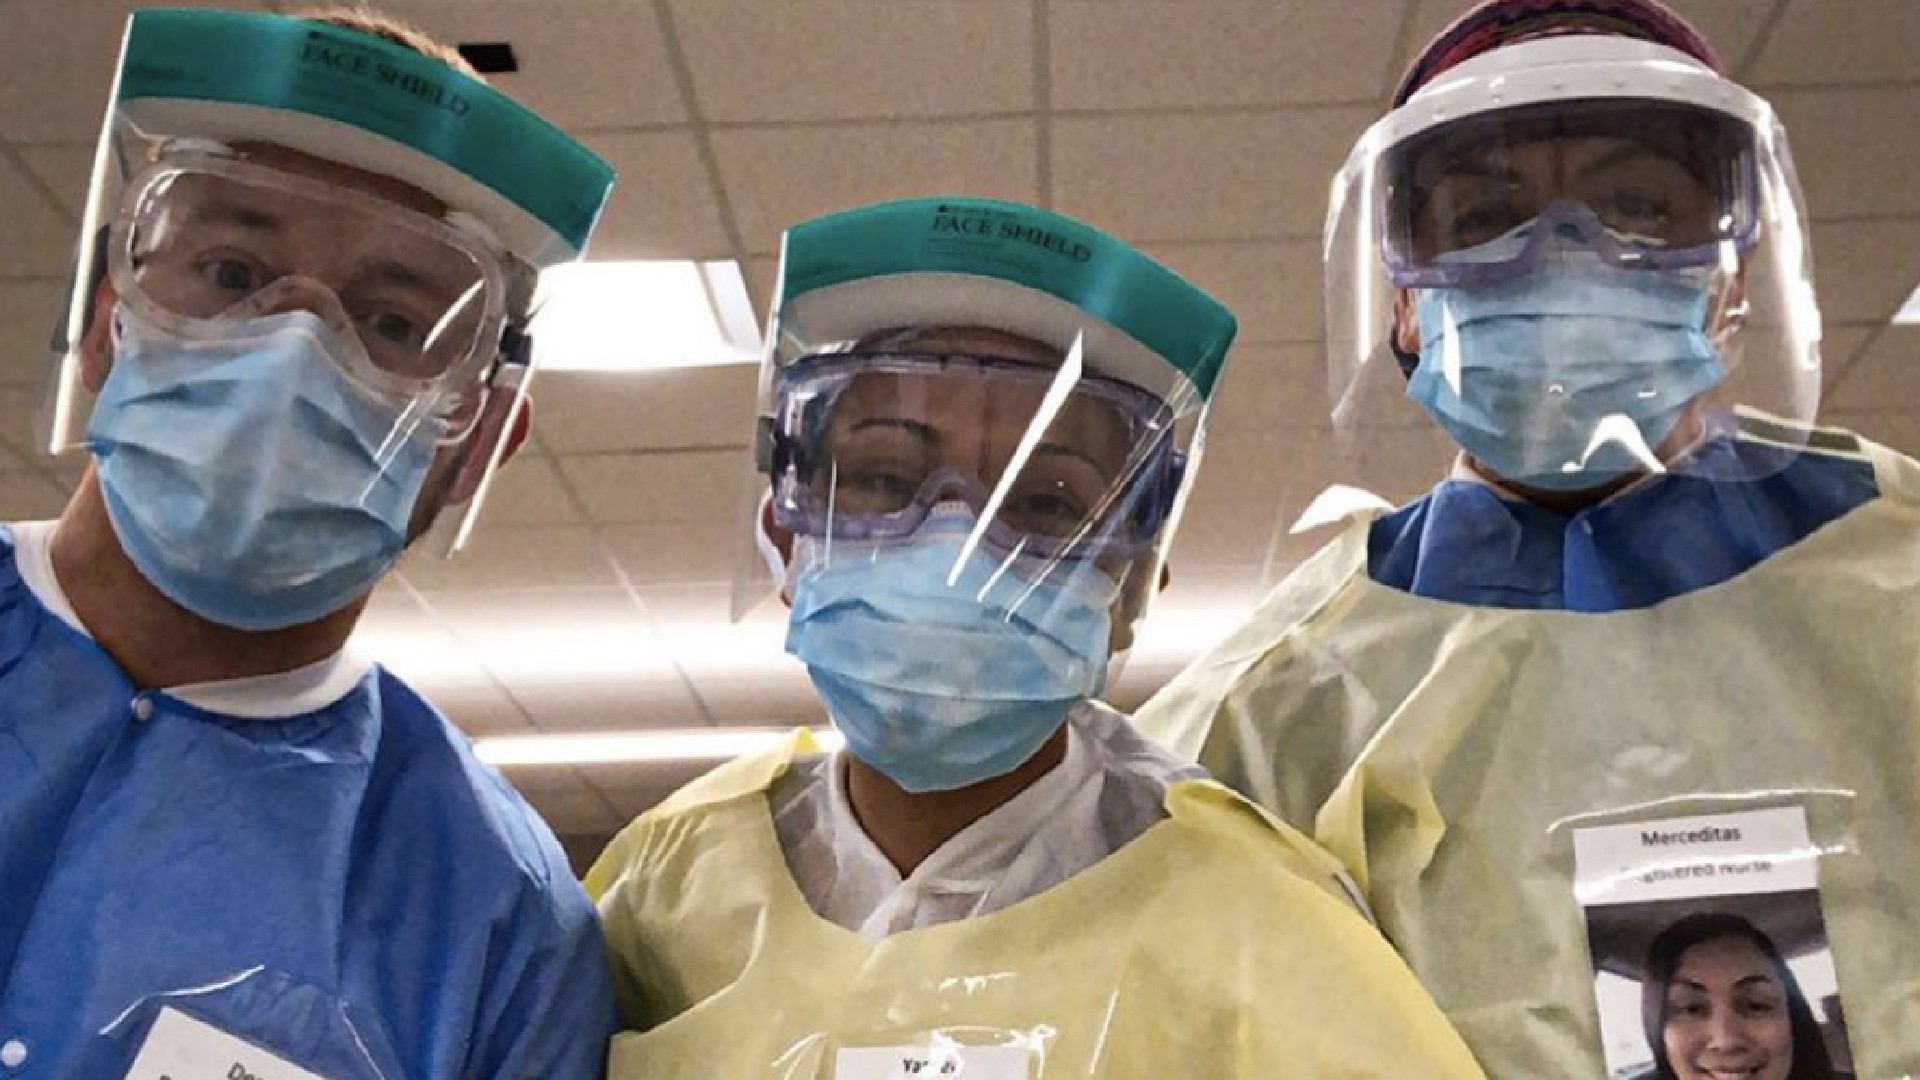 Health care workers wearing photos of themselves outside of their PPE to help put patients at ease. (Derek DeVault)